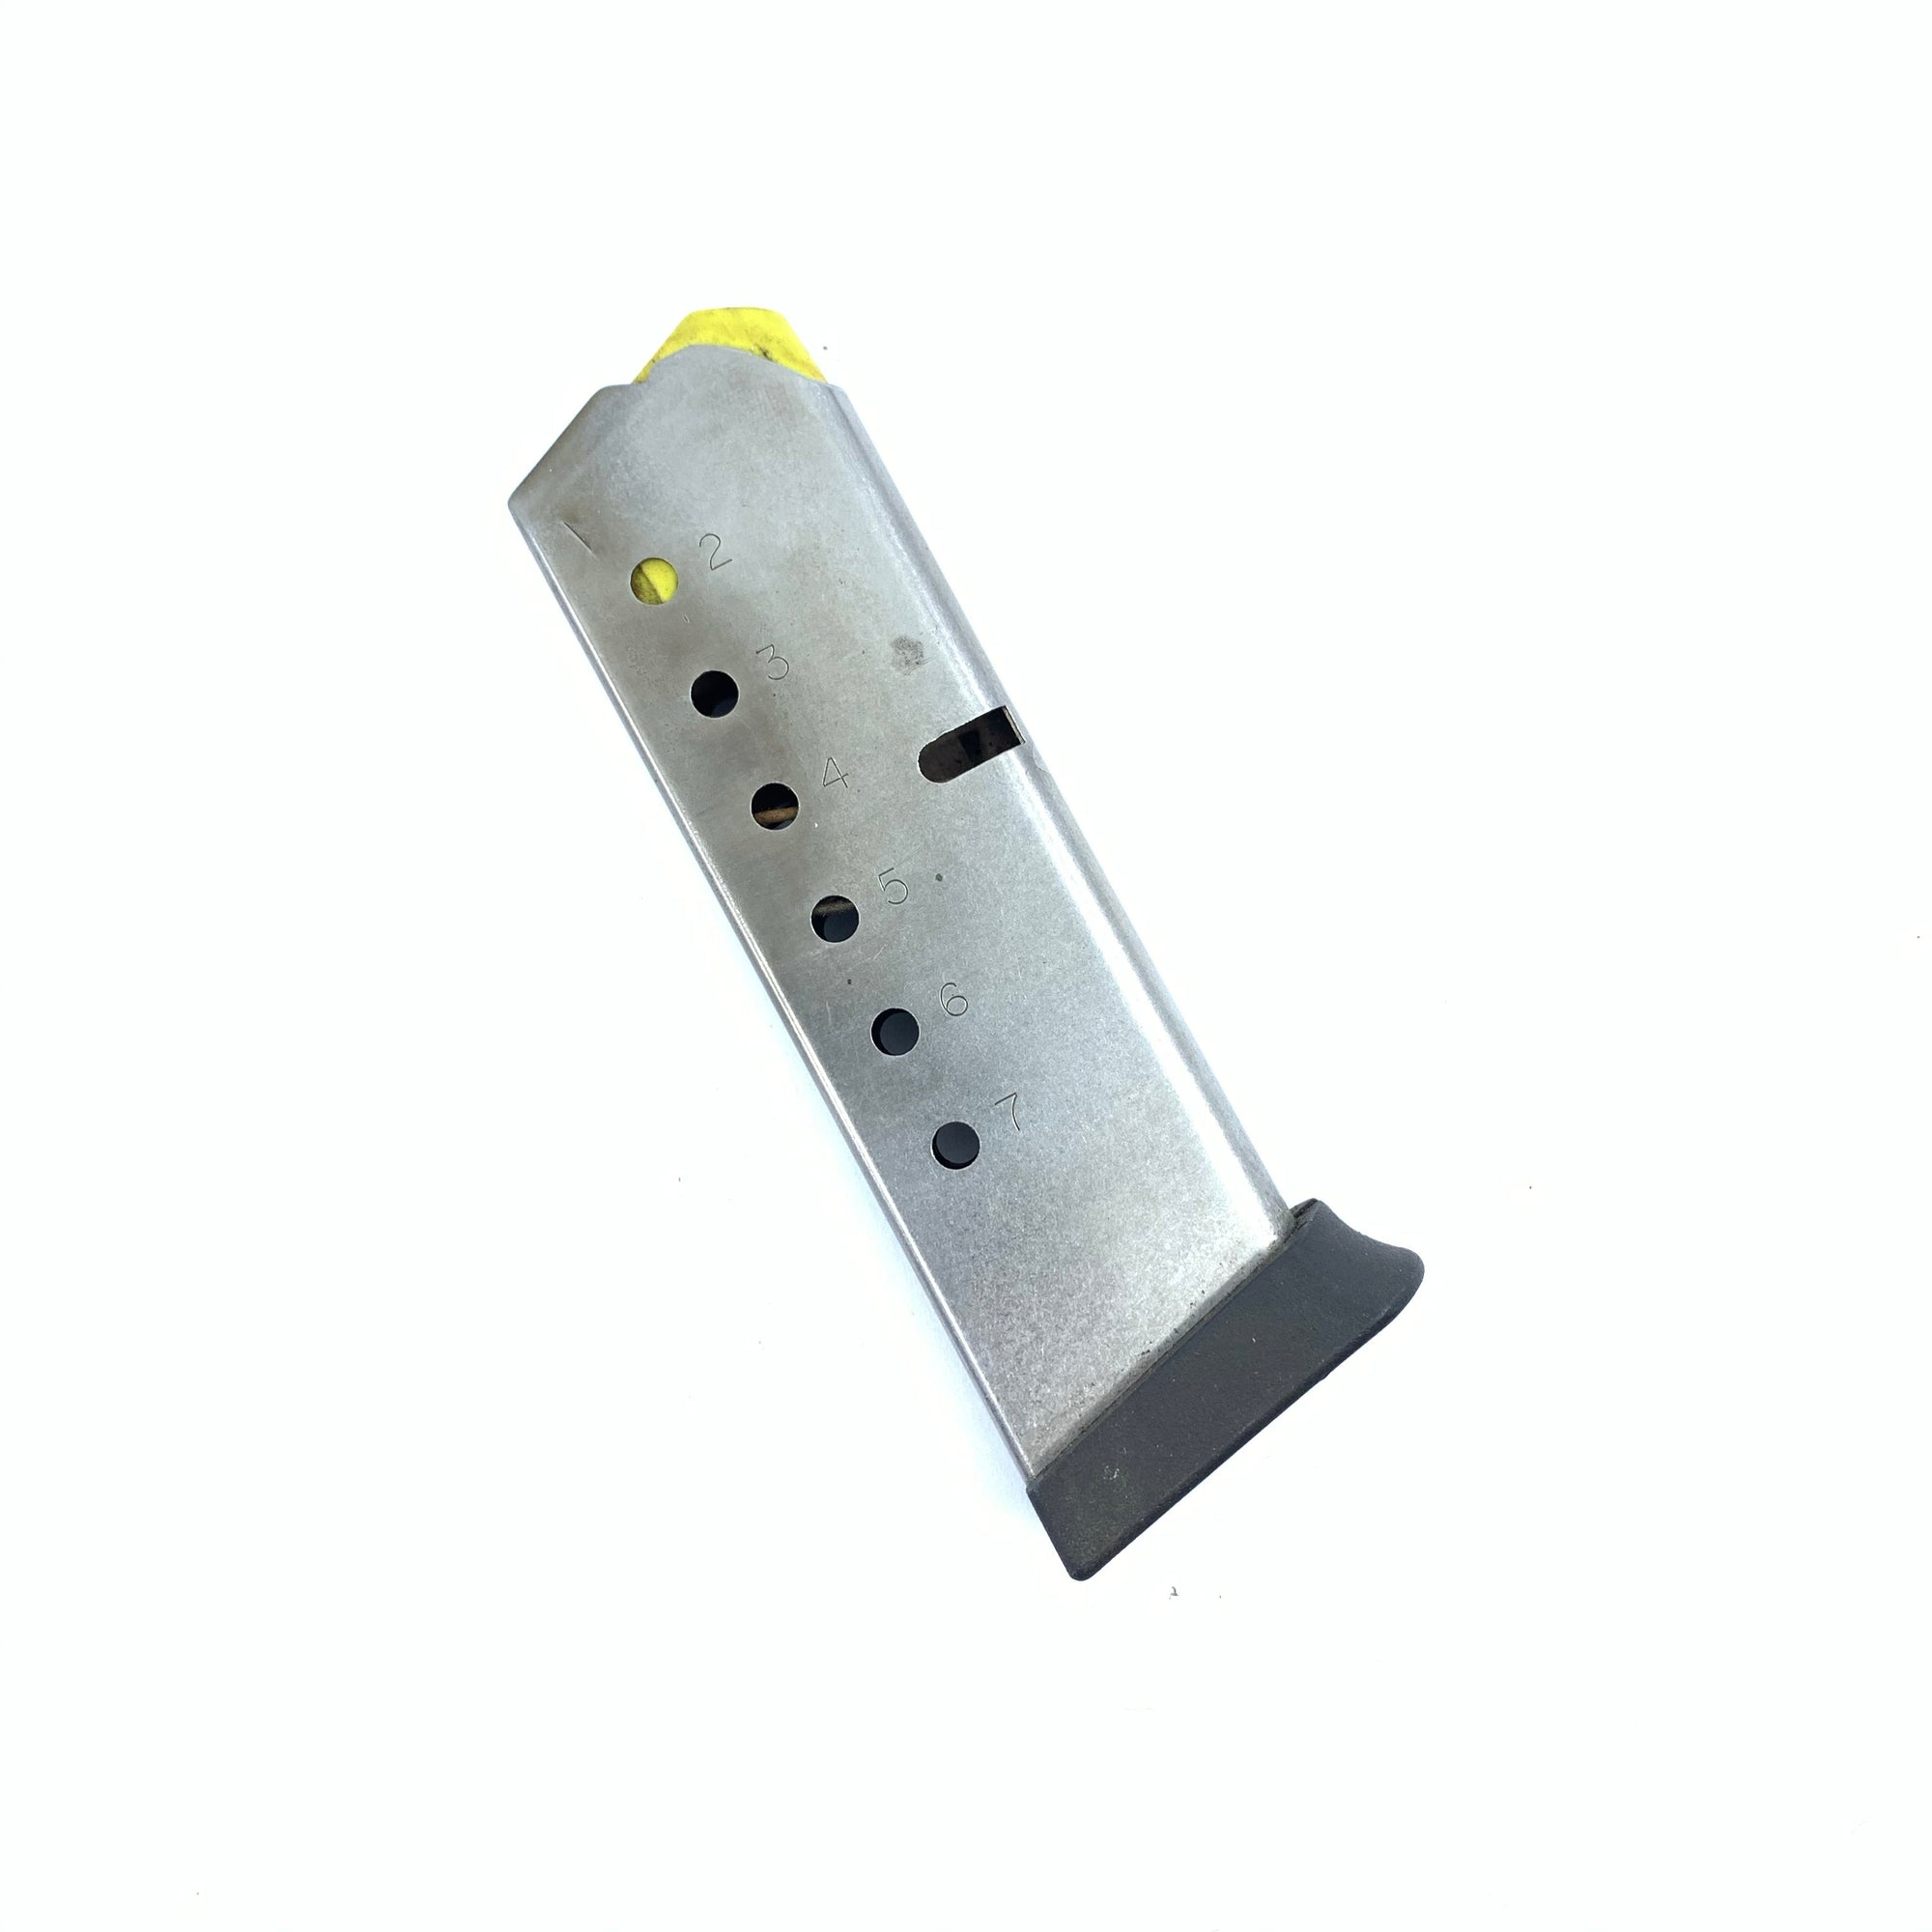 Smith & Wesson Mod 4516-1 45Acp 7 Shot Magazine with Yellow Follower